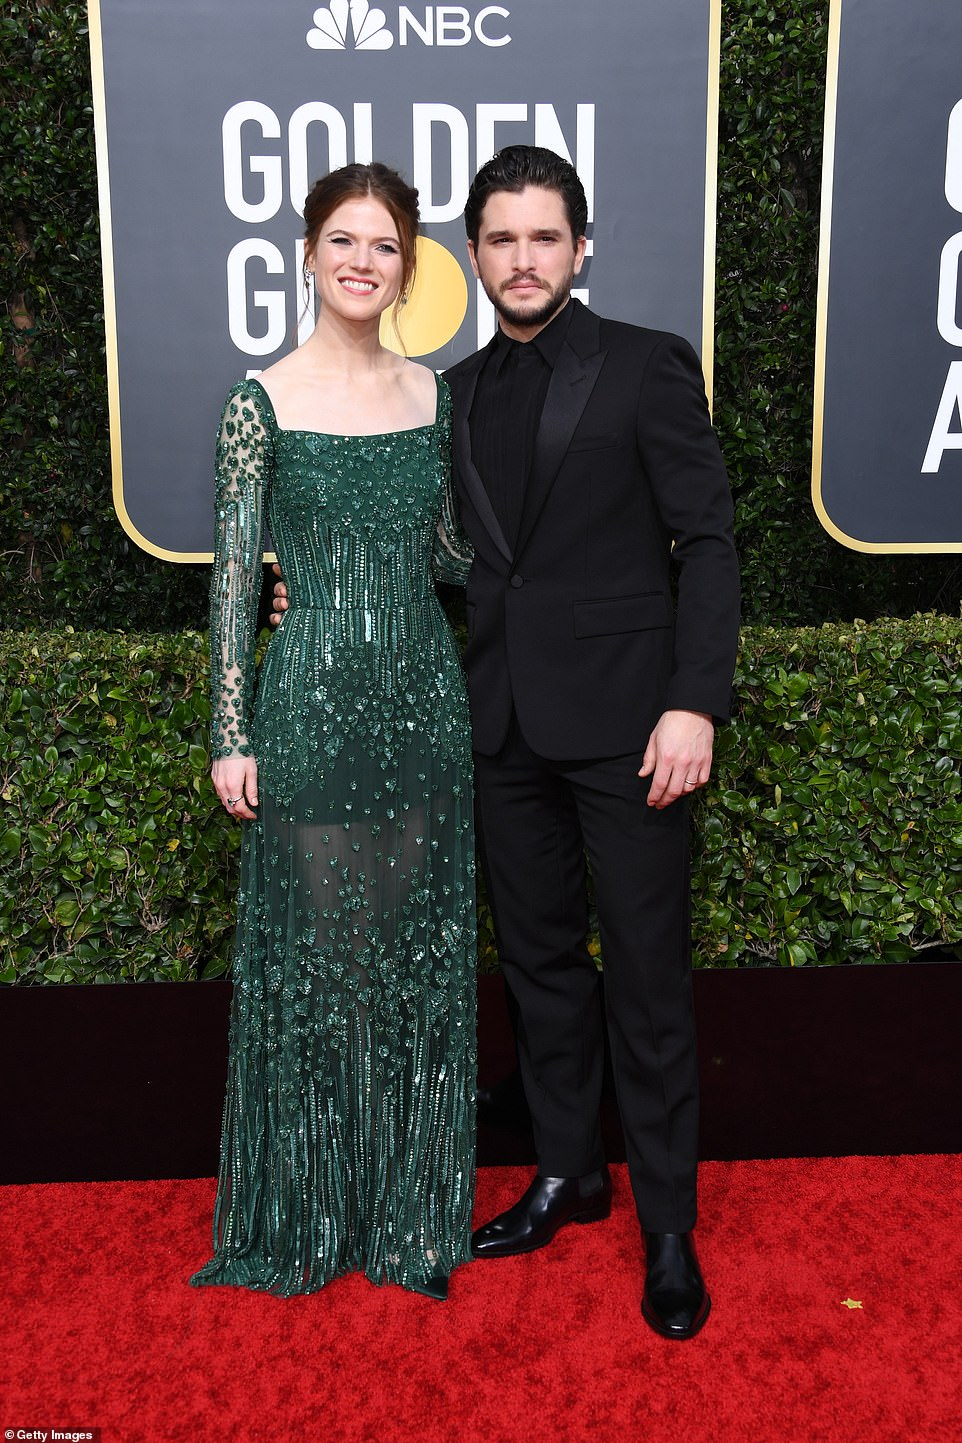 Red Carpet bling Kit Harington was Joined by His Wife Rose Leslie Wearing a Green Long Sleeves Gown with Crystals and Beads